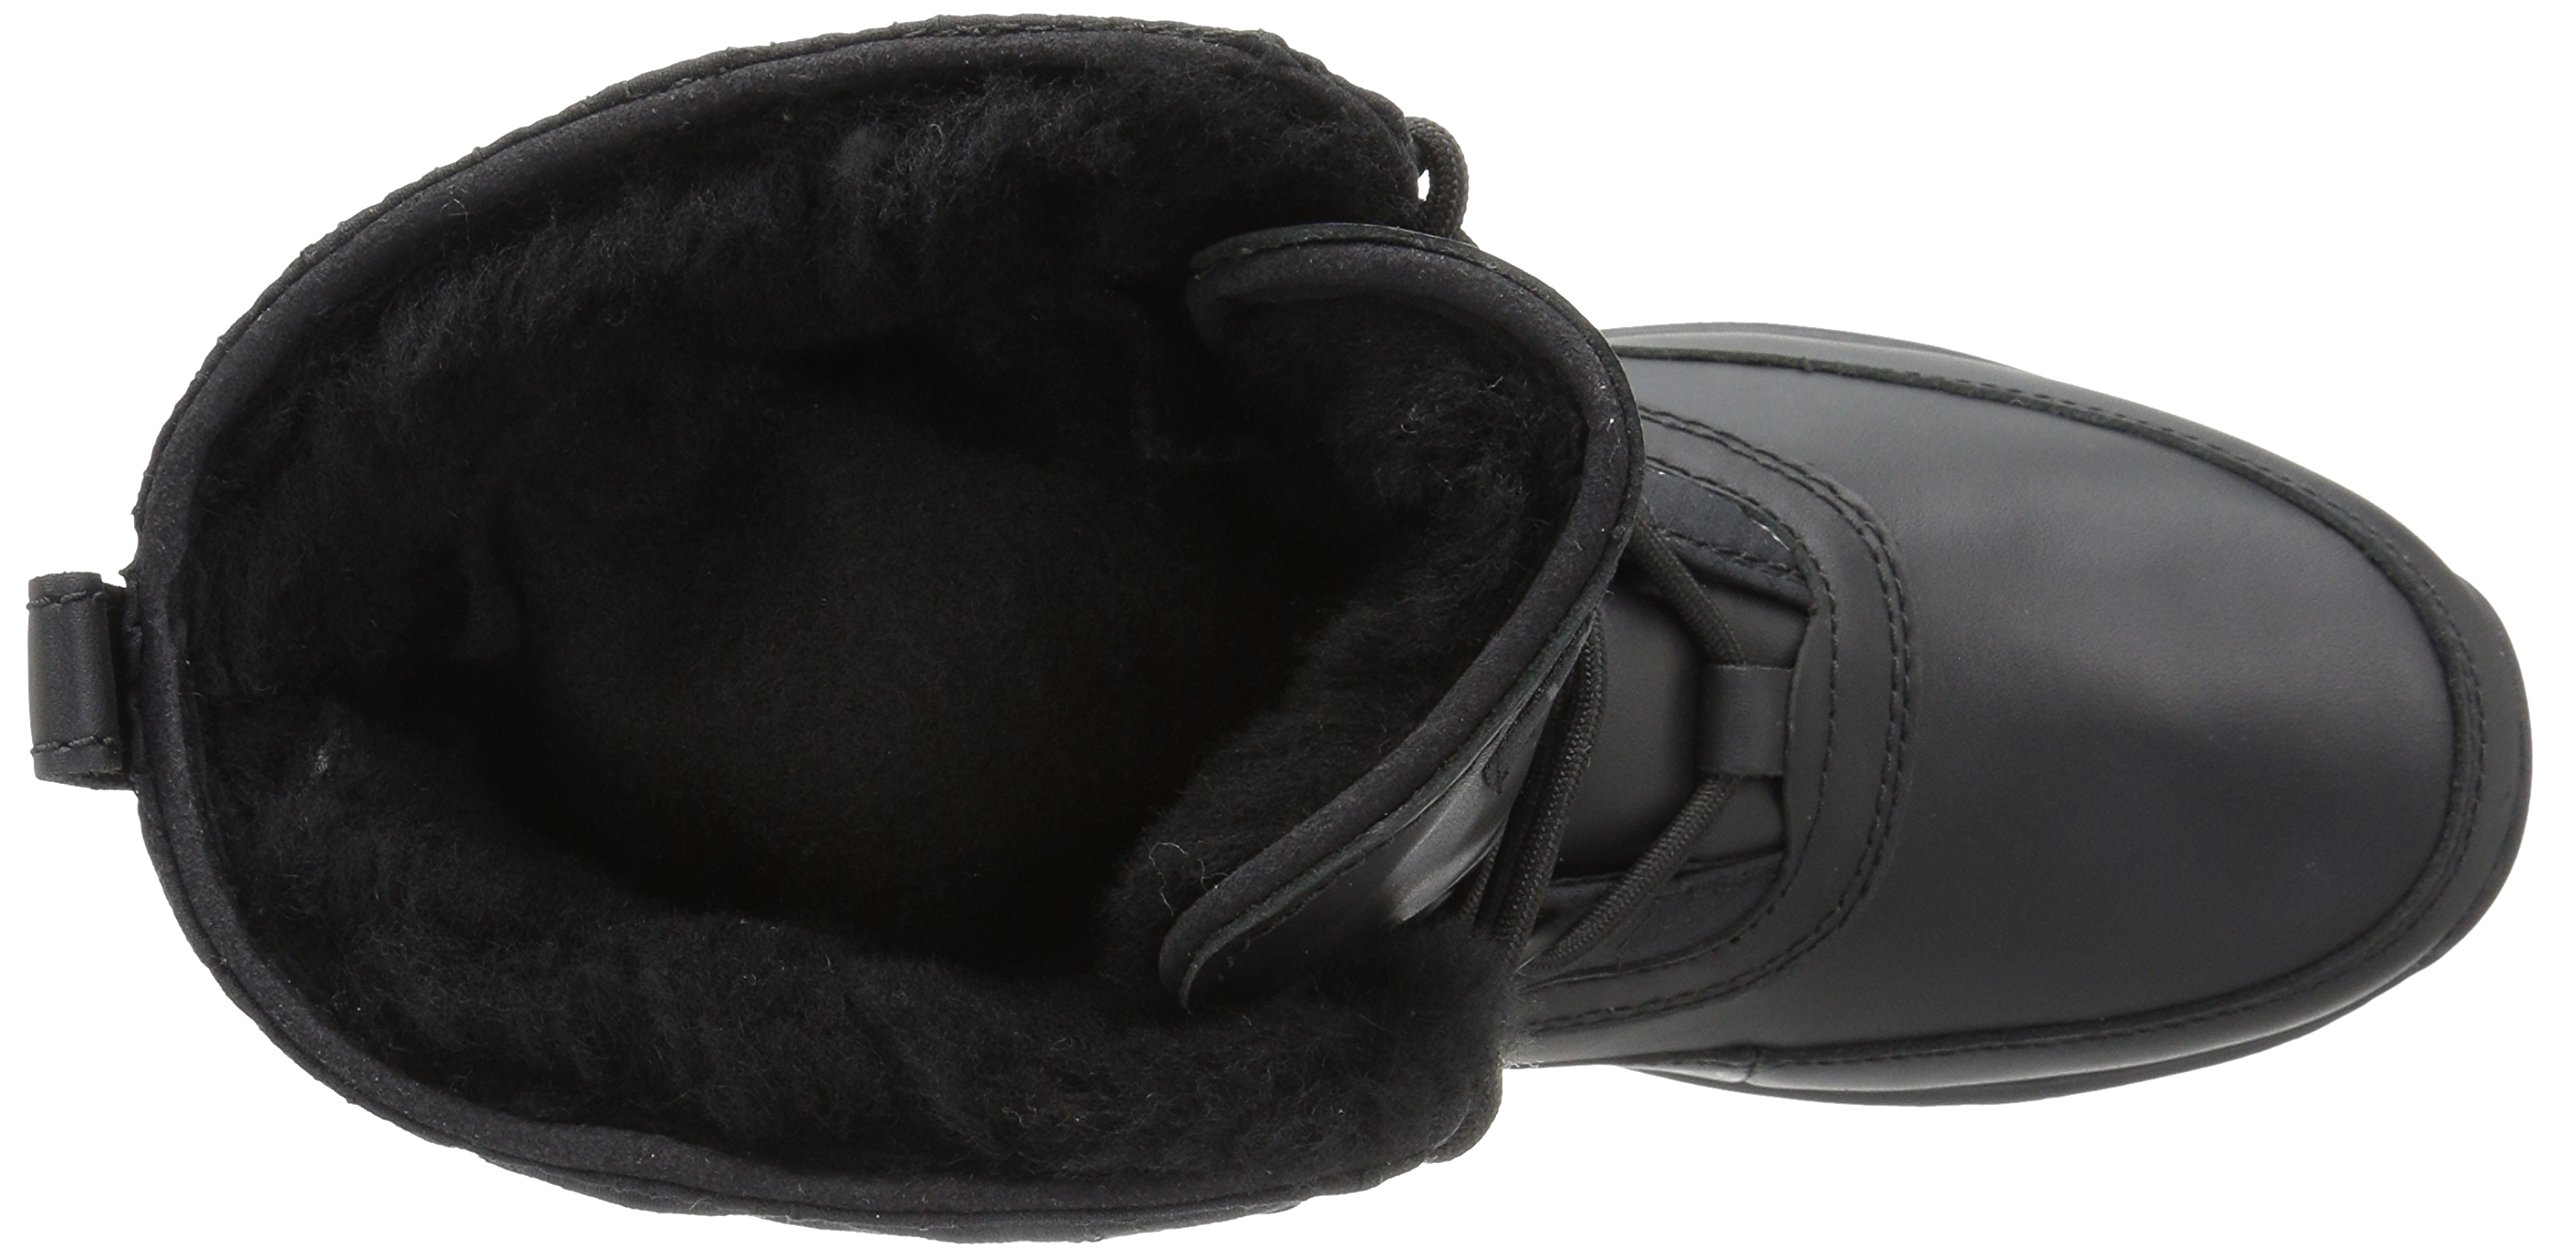 UGG Women's Lachlan Winter Boot, Black, 8 M US by UGG (Image #8)